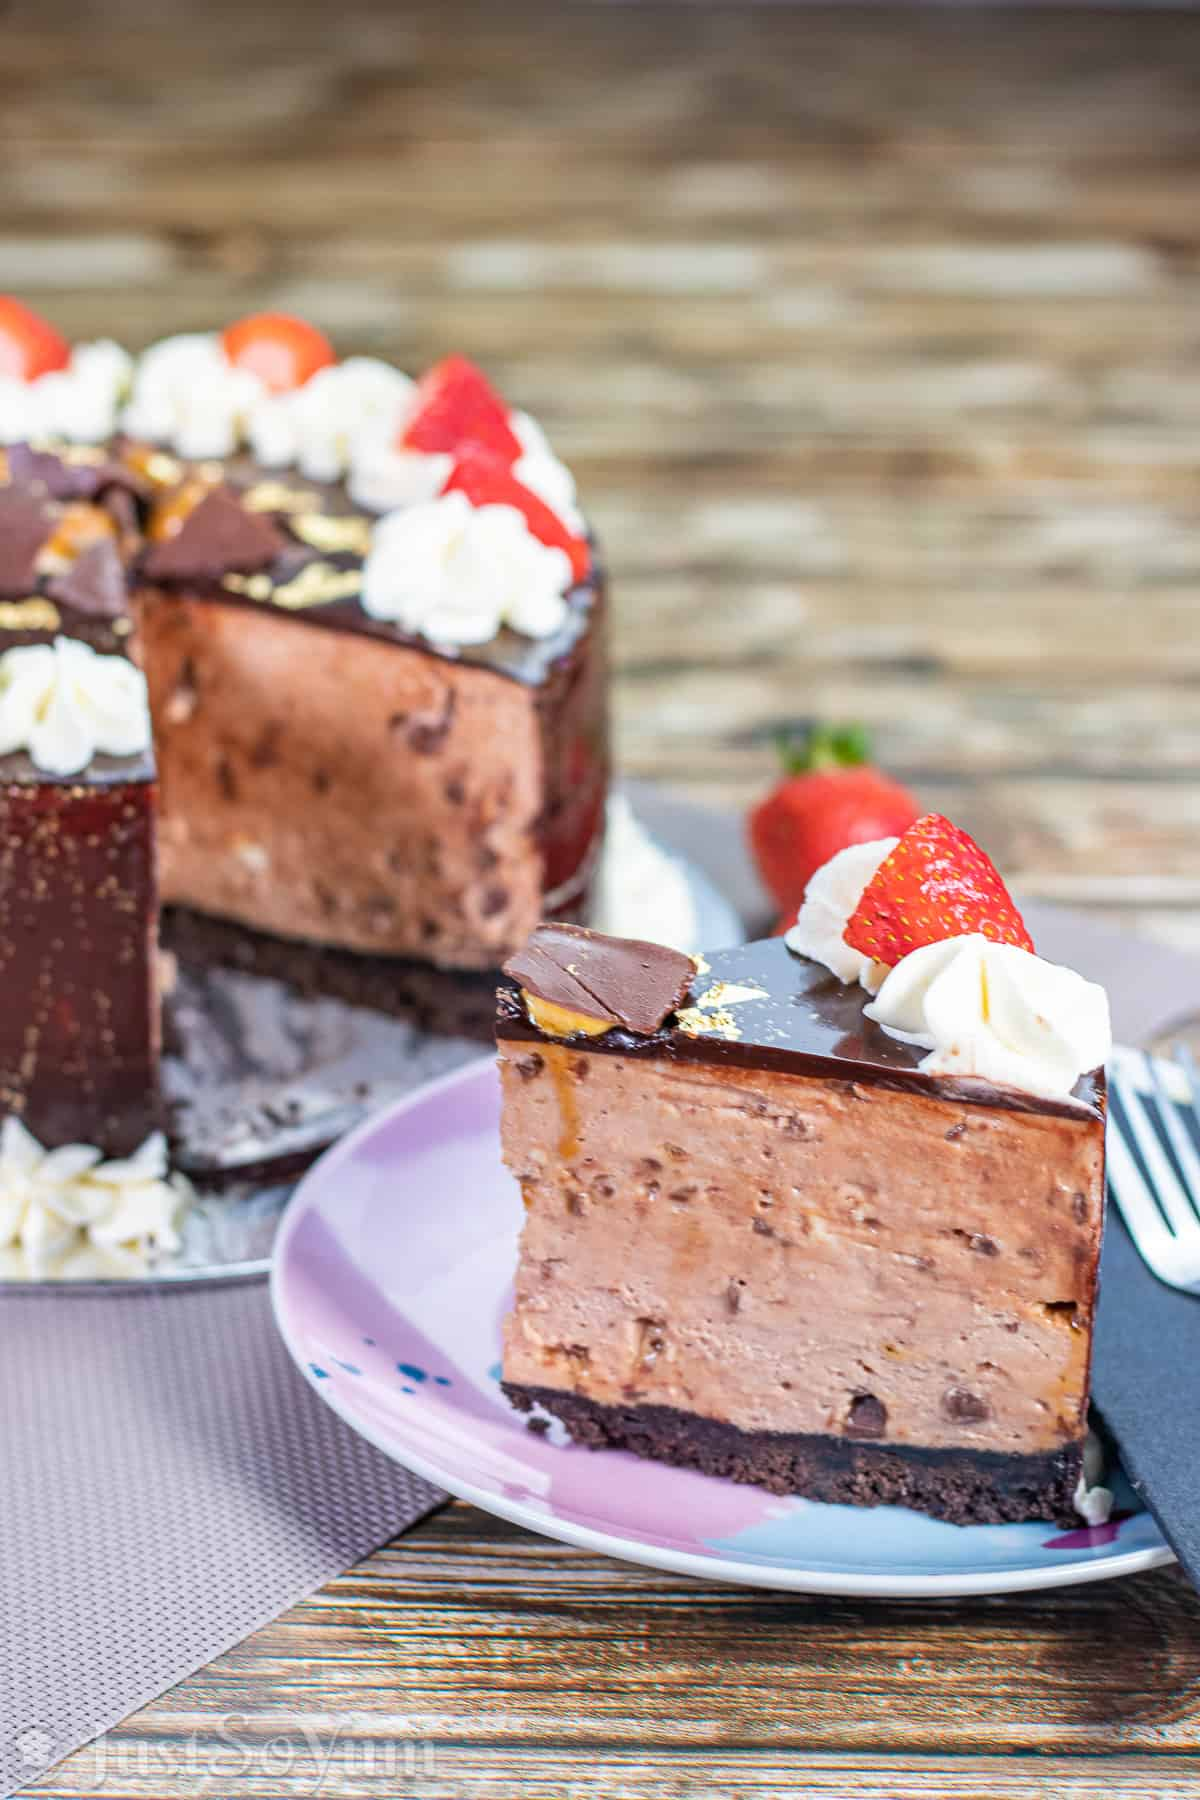 website-image-for-no-bake-chocolate-honeycomb-cheesecake-with-a-mirror-glaze